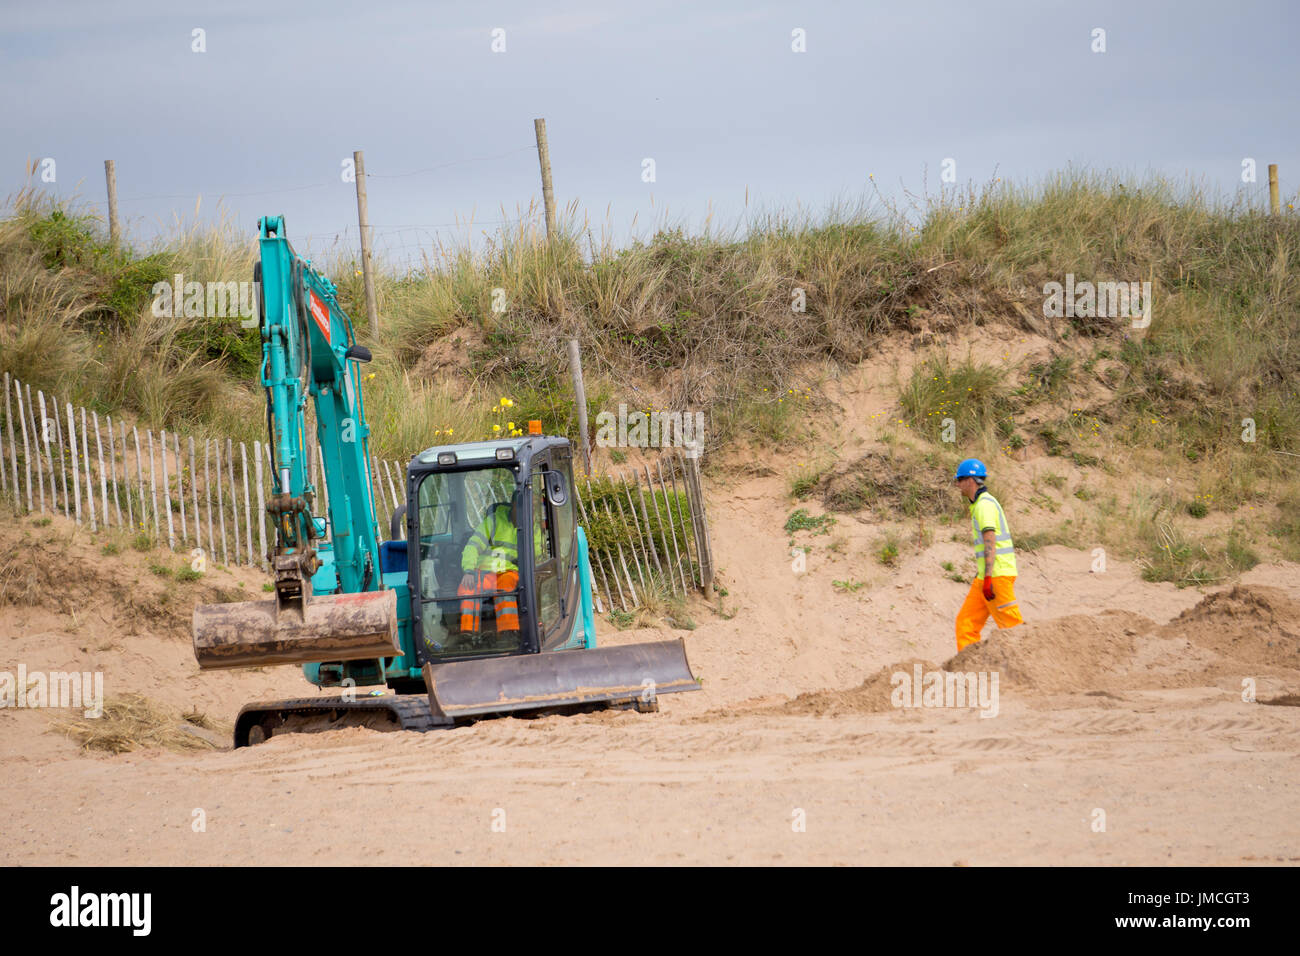 Workers moving sand with diggers and building access to the beach at Dawlish warren, Devon, England, UK - Stock Image